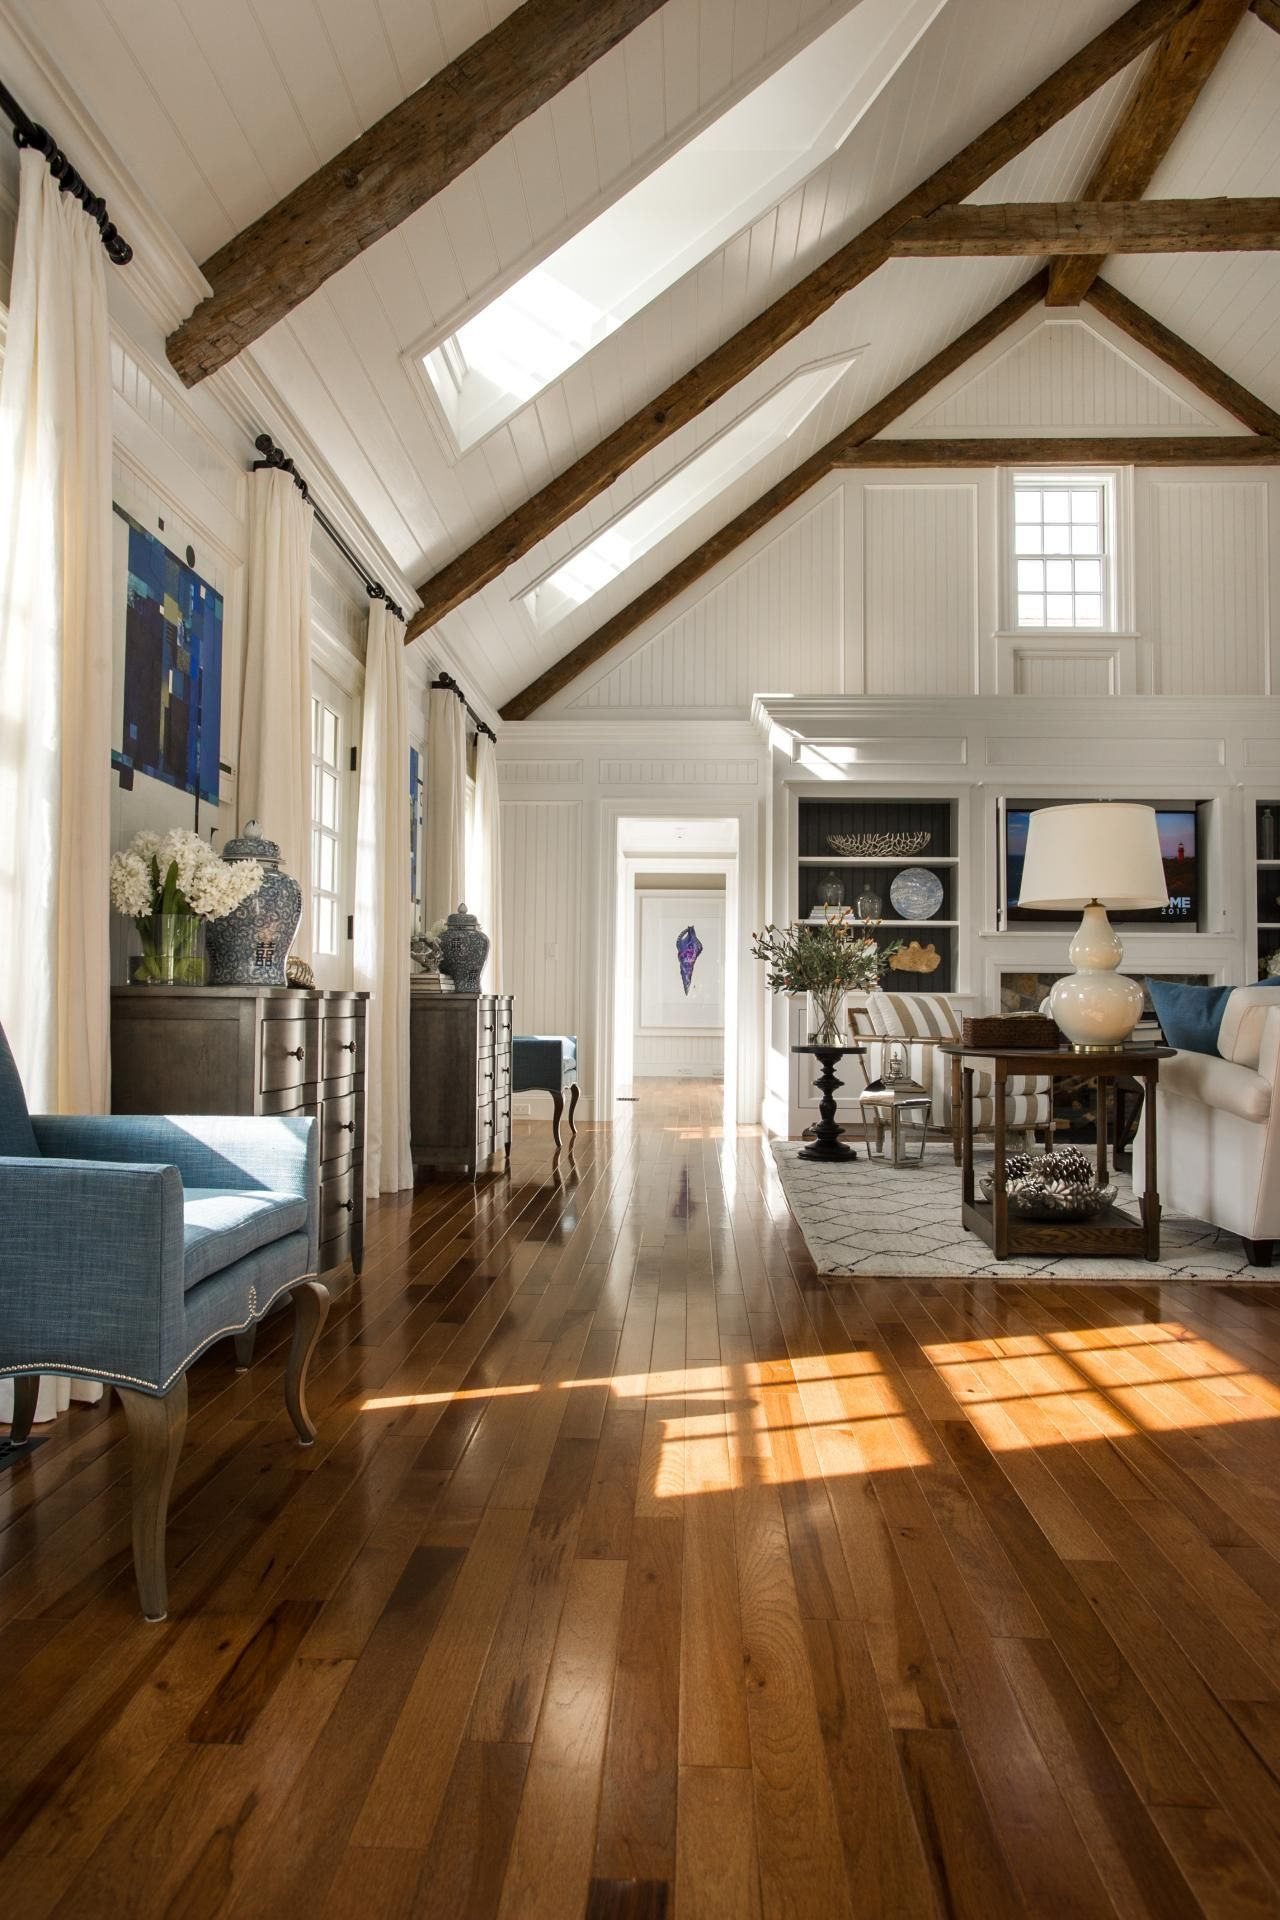 Cool Sunken Living Room Ideas For Your Dreamed House: Hgtv Dream Homes, Great Rooms, House